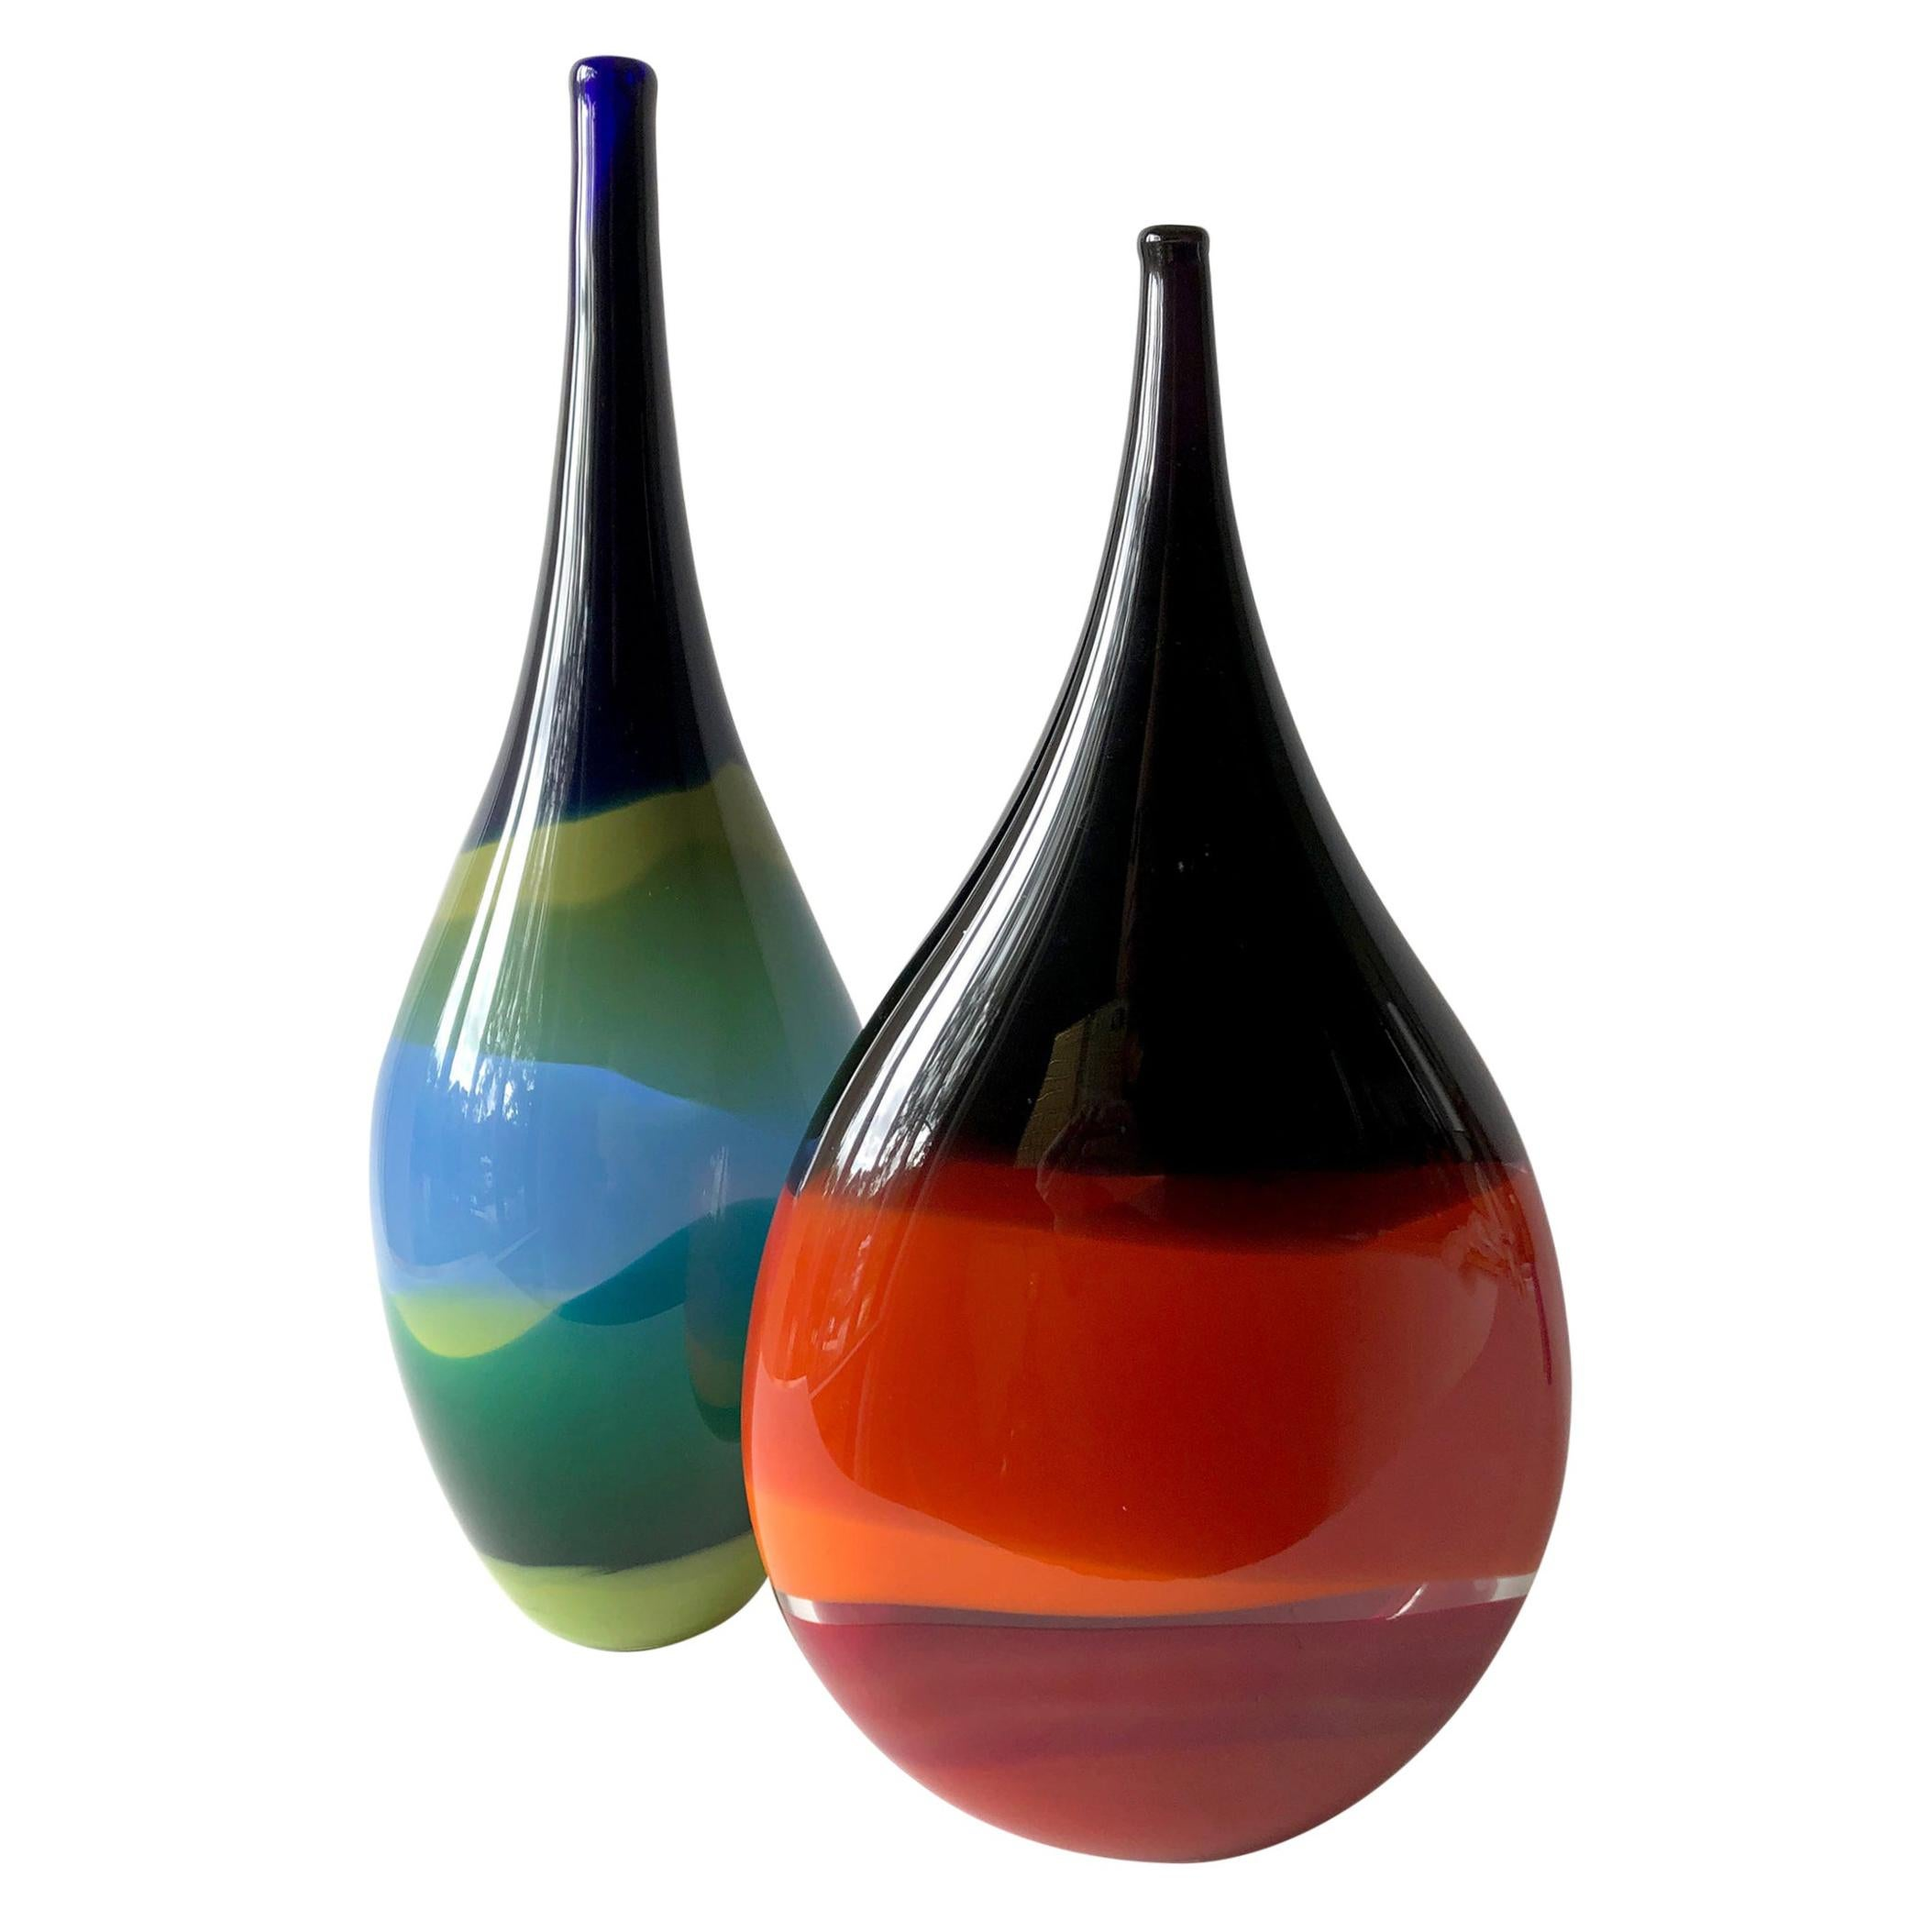 Caleb Siemon Pair of Hand Blown California Modern Glass Vases